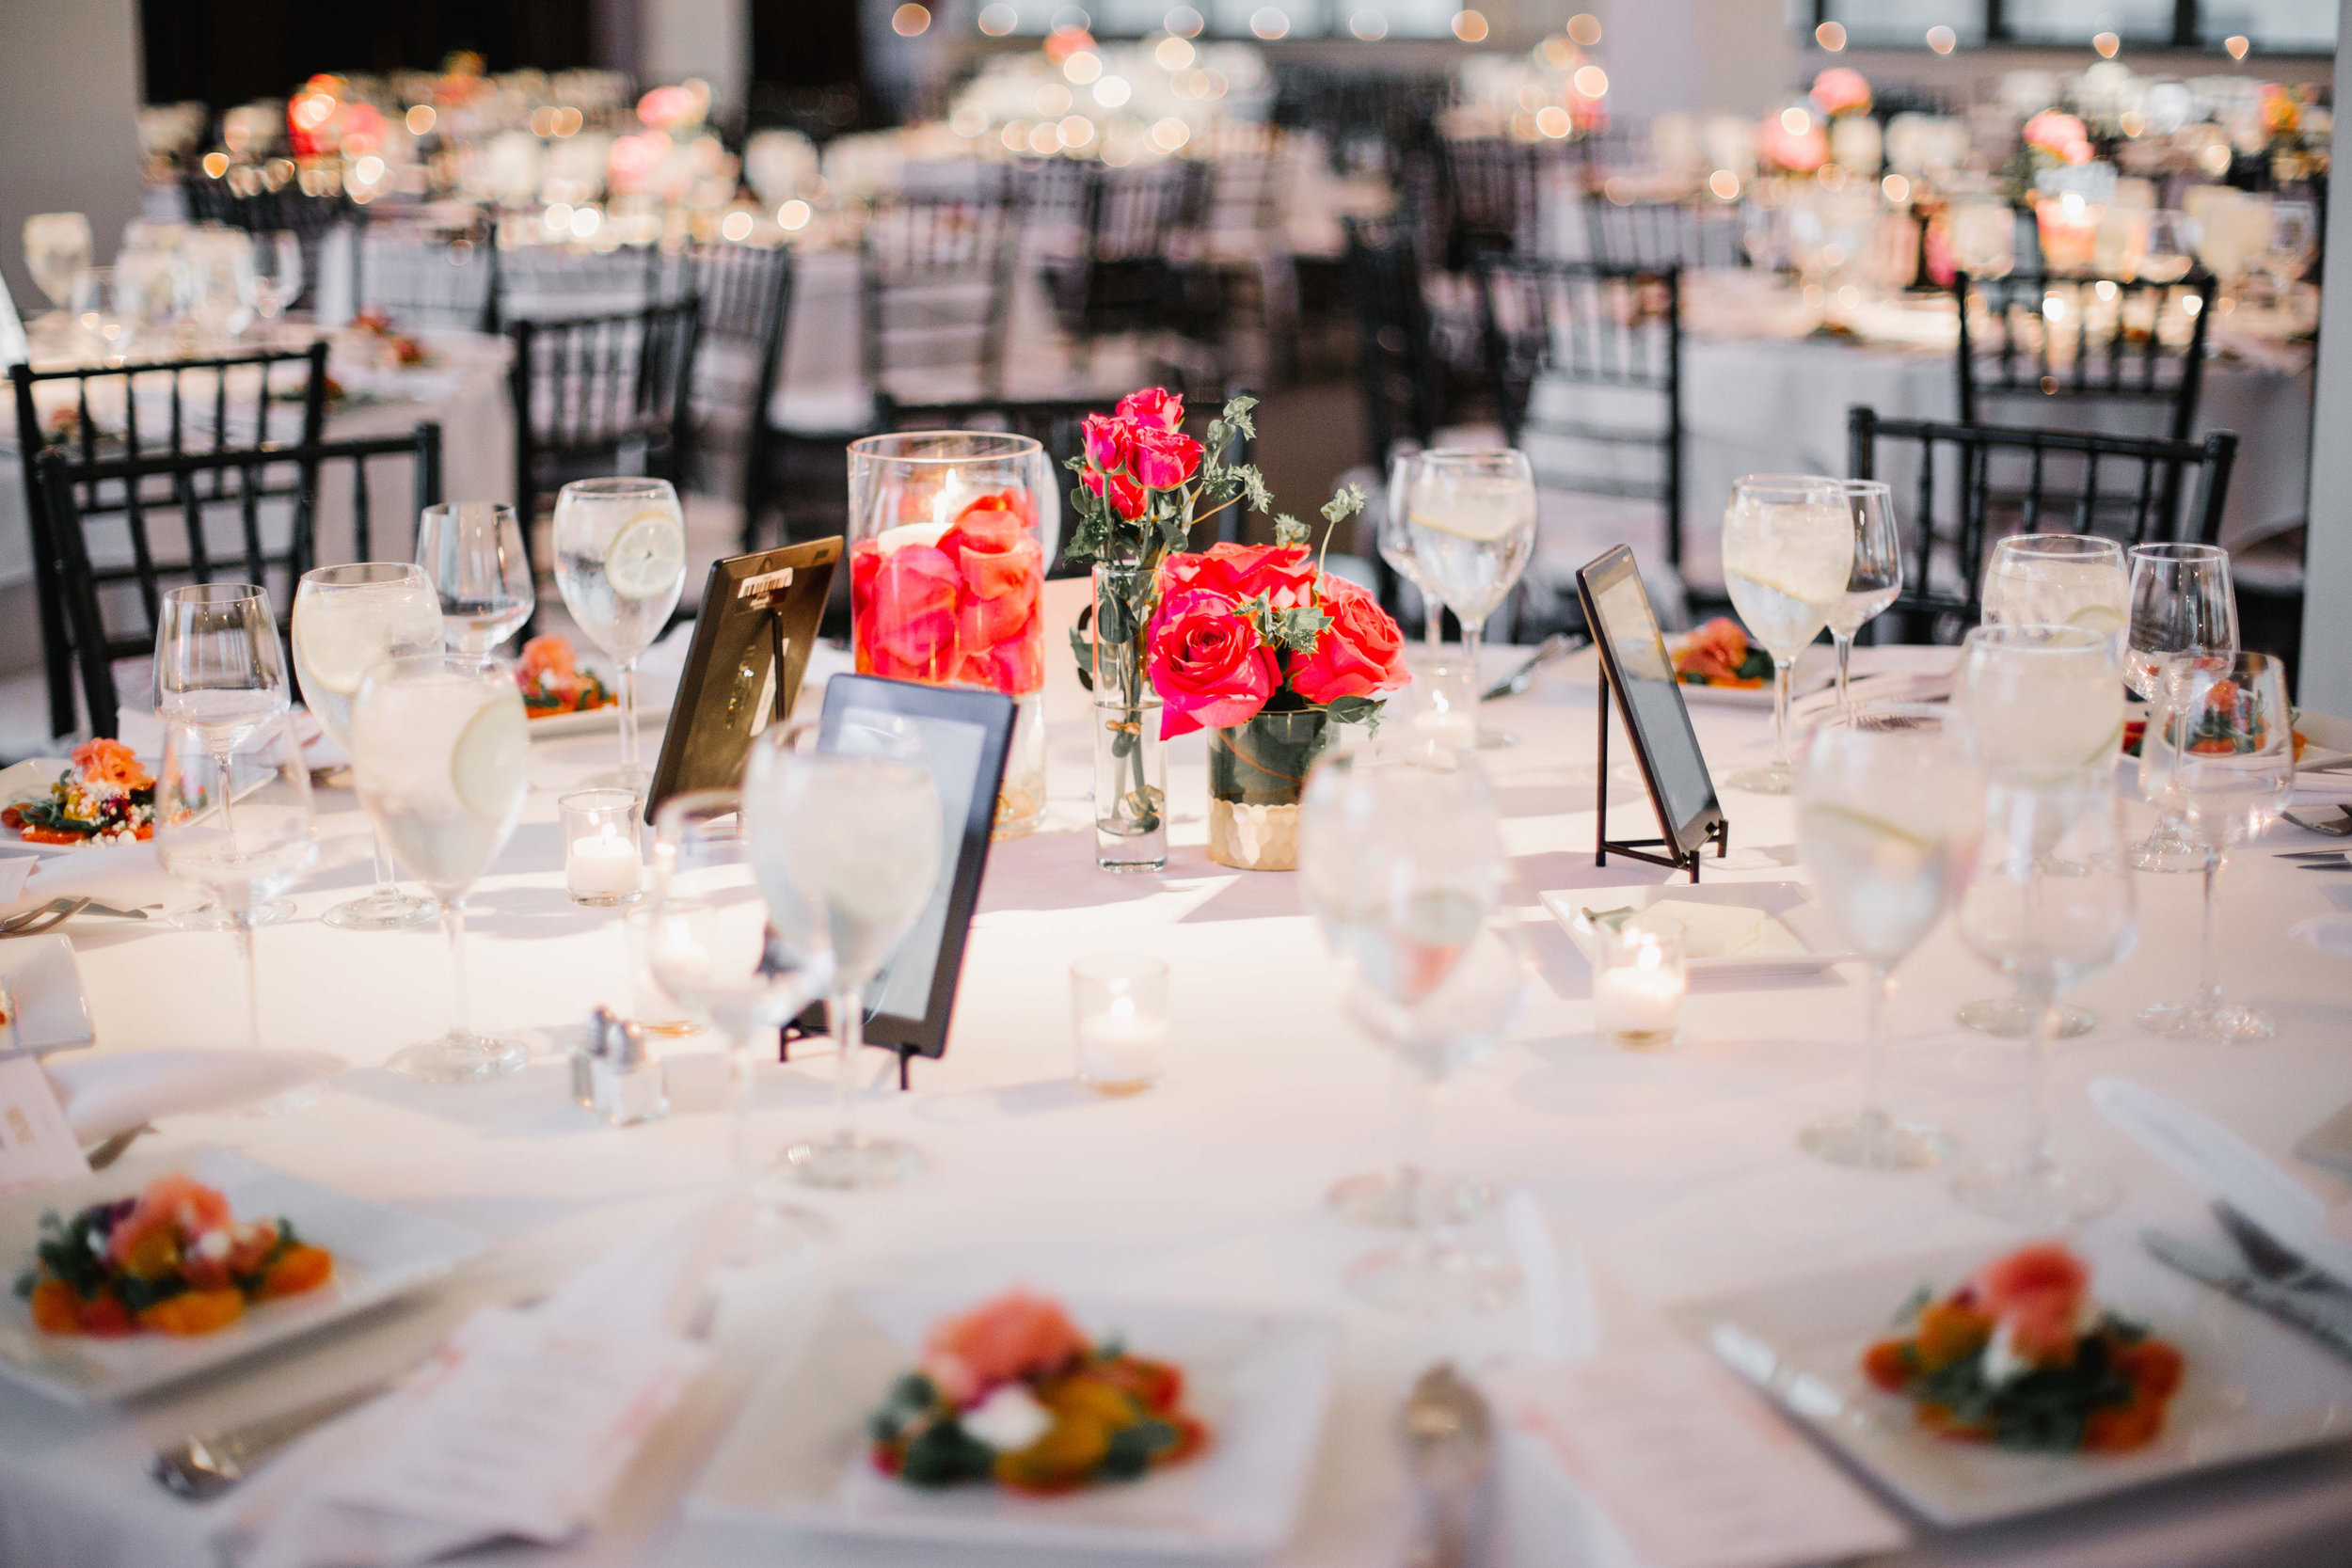 Highlights of our 2018 Nomi Network Gala - Know Me - Thank you so much for attending Nomi Network's 8th Annual Gala! Your generosity makes it possible for us to serve survivors and women at risk of human trafficking, and it's because of you that we were able to raise $430,000! Thank you for being a part of this powerful night!